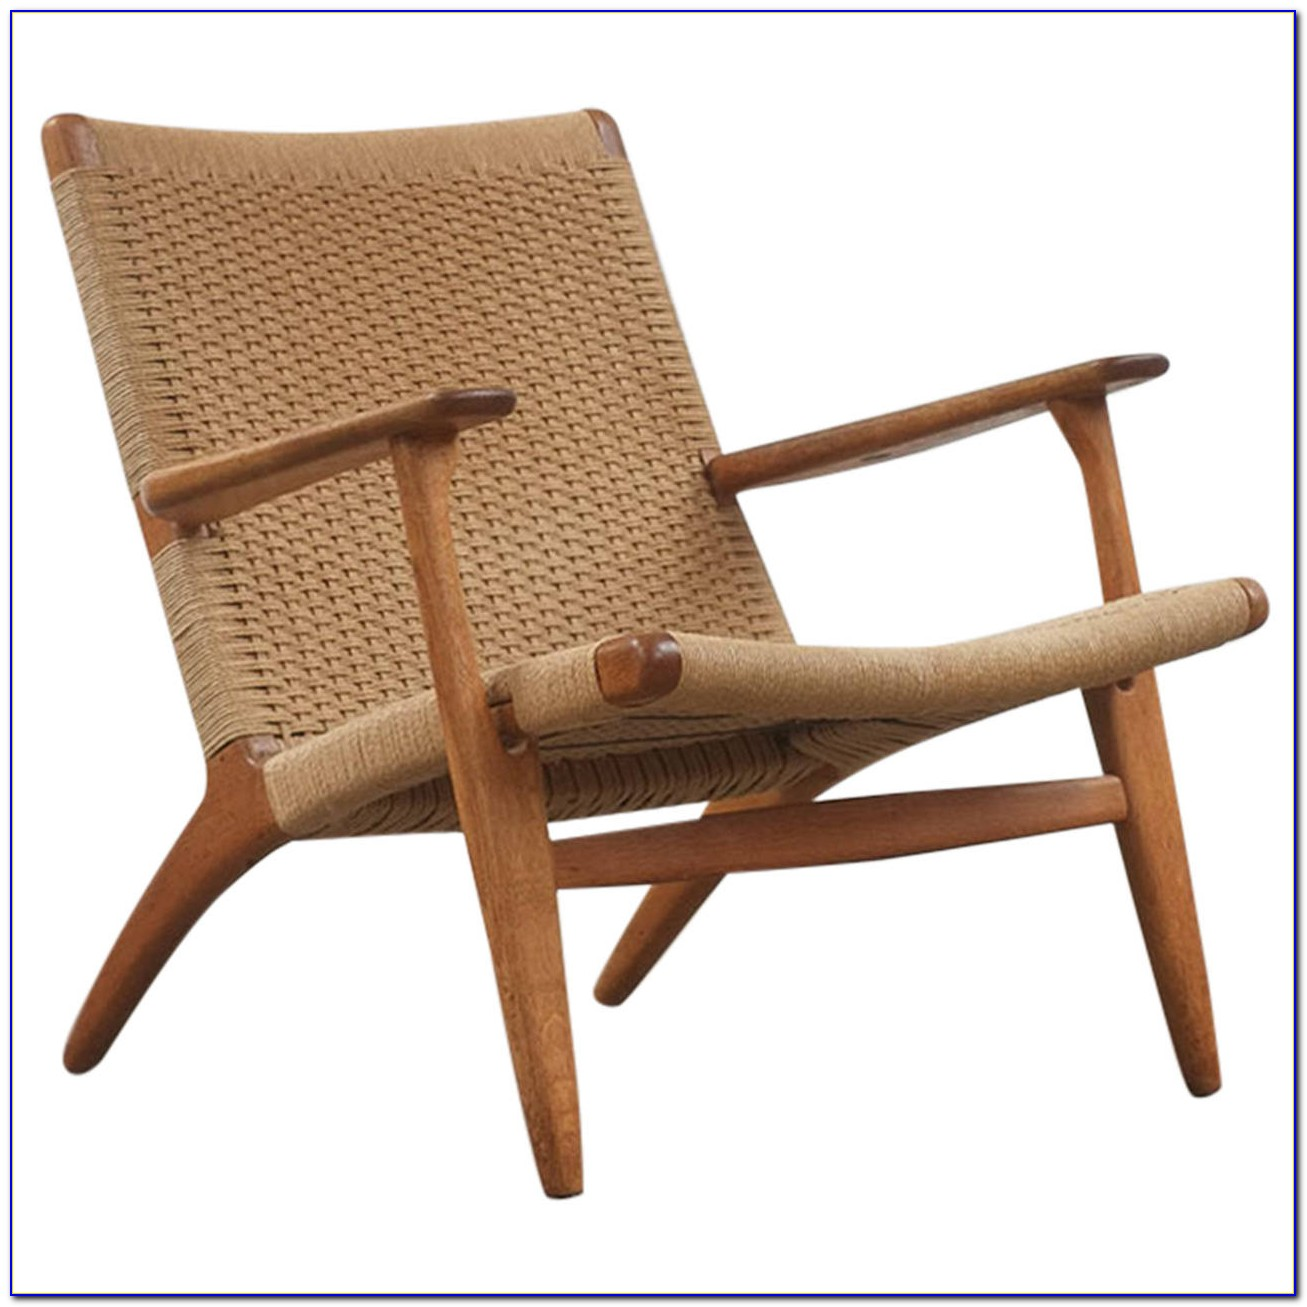 Hans Wegner Chair Dimensions